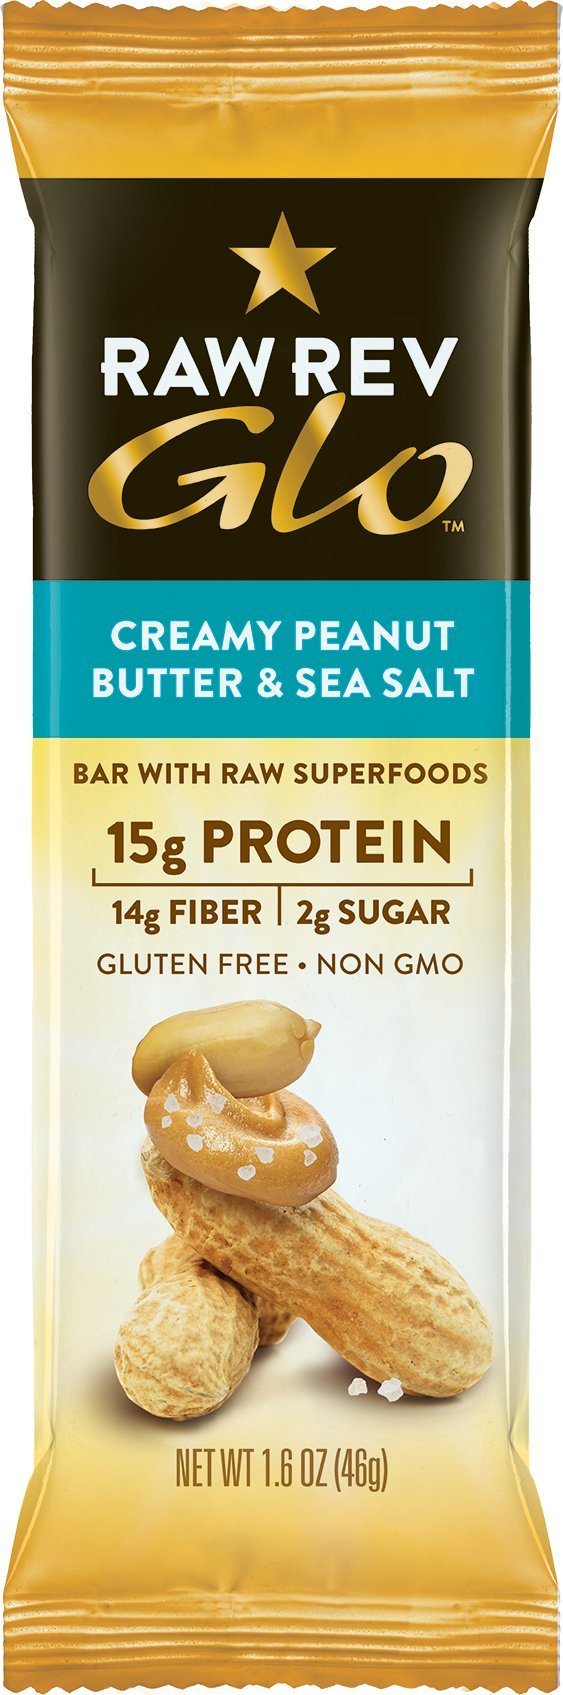 Raw Rev Glo Vegan, Gluten-Free Protein Bars - Creamy Peanut Butter & Sea Salt 1.6 ounce (Pack of 24) by Raw Rev Glo